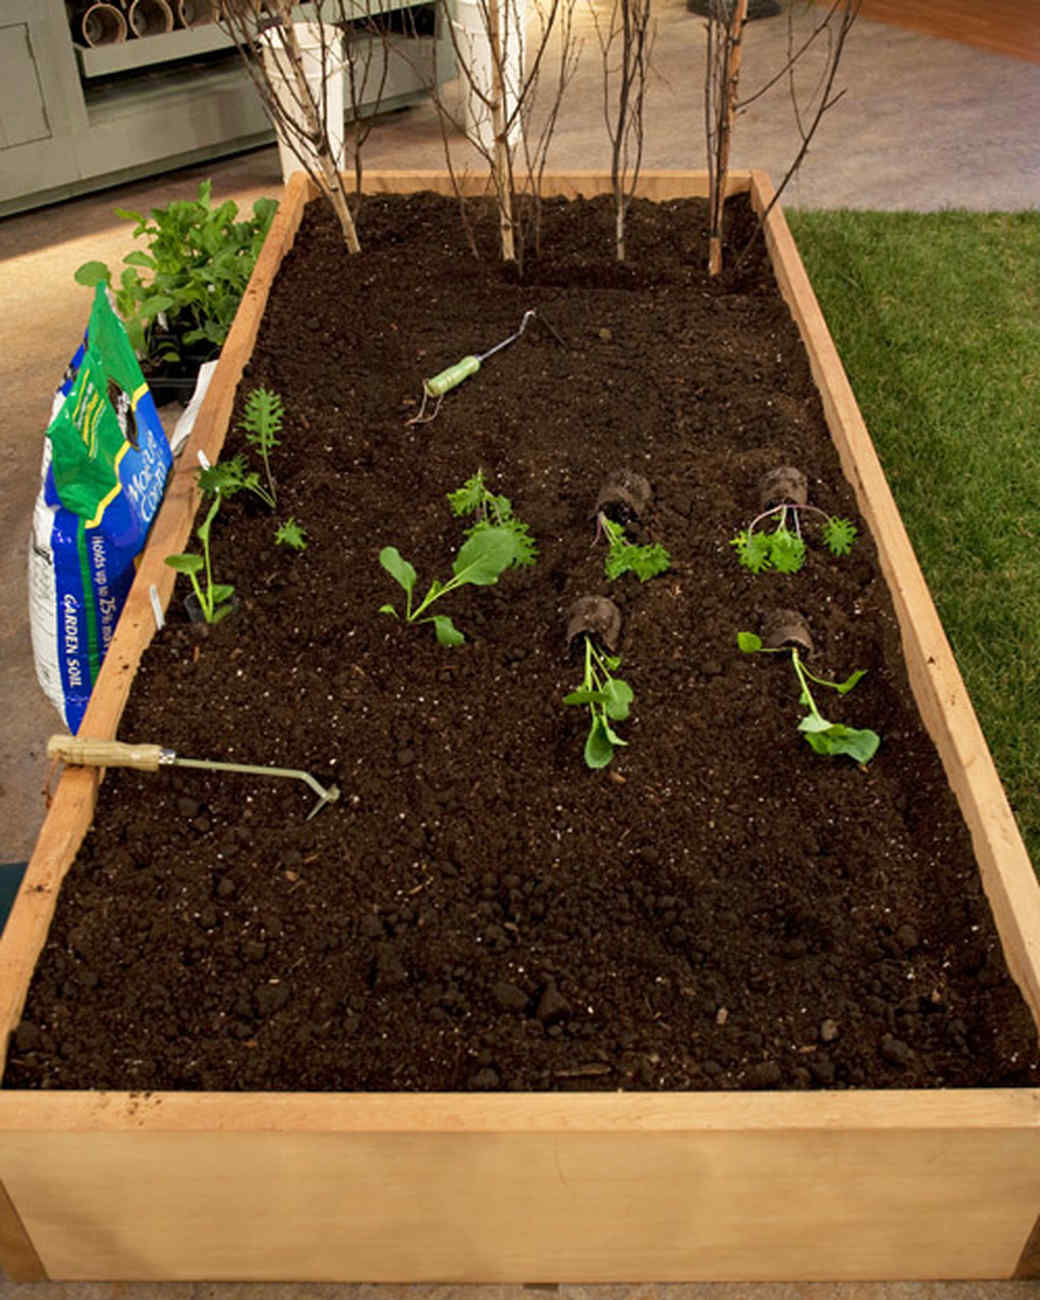 Planting Your Vegetable Garden Video – What to Plant in Your Vegetable Garden